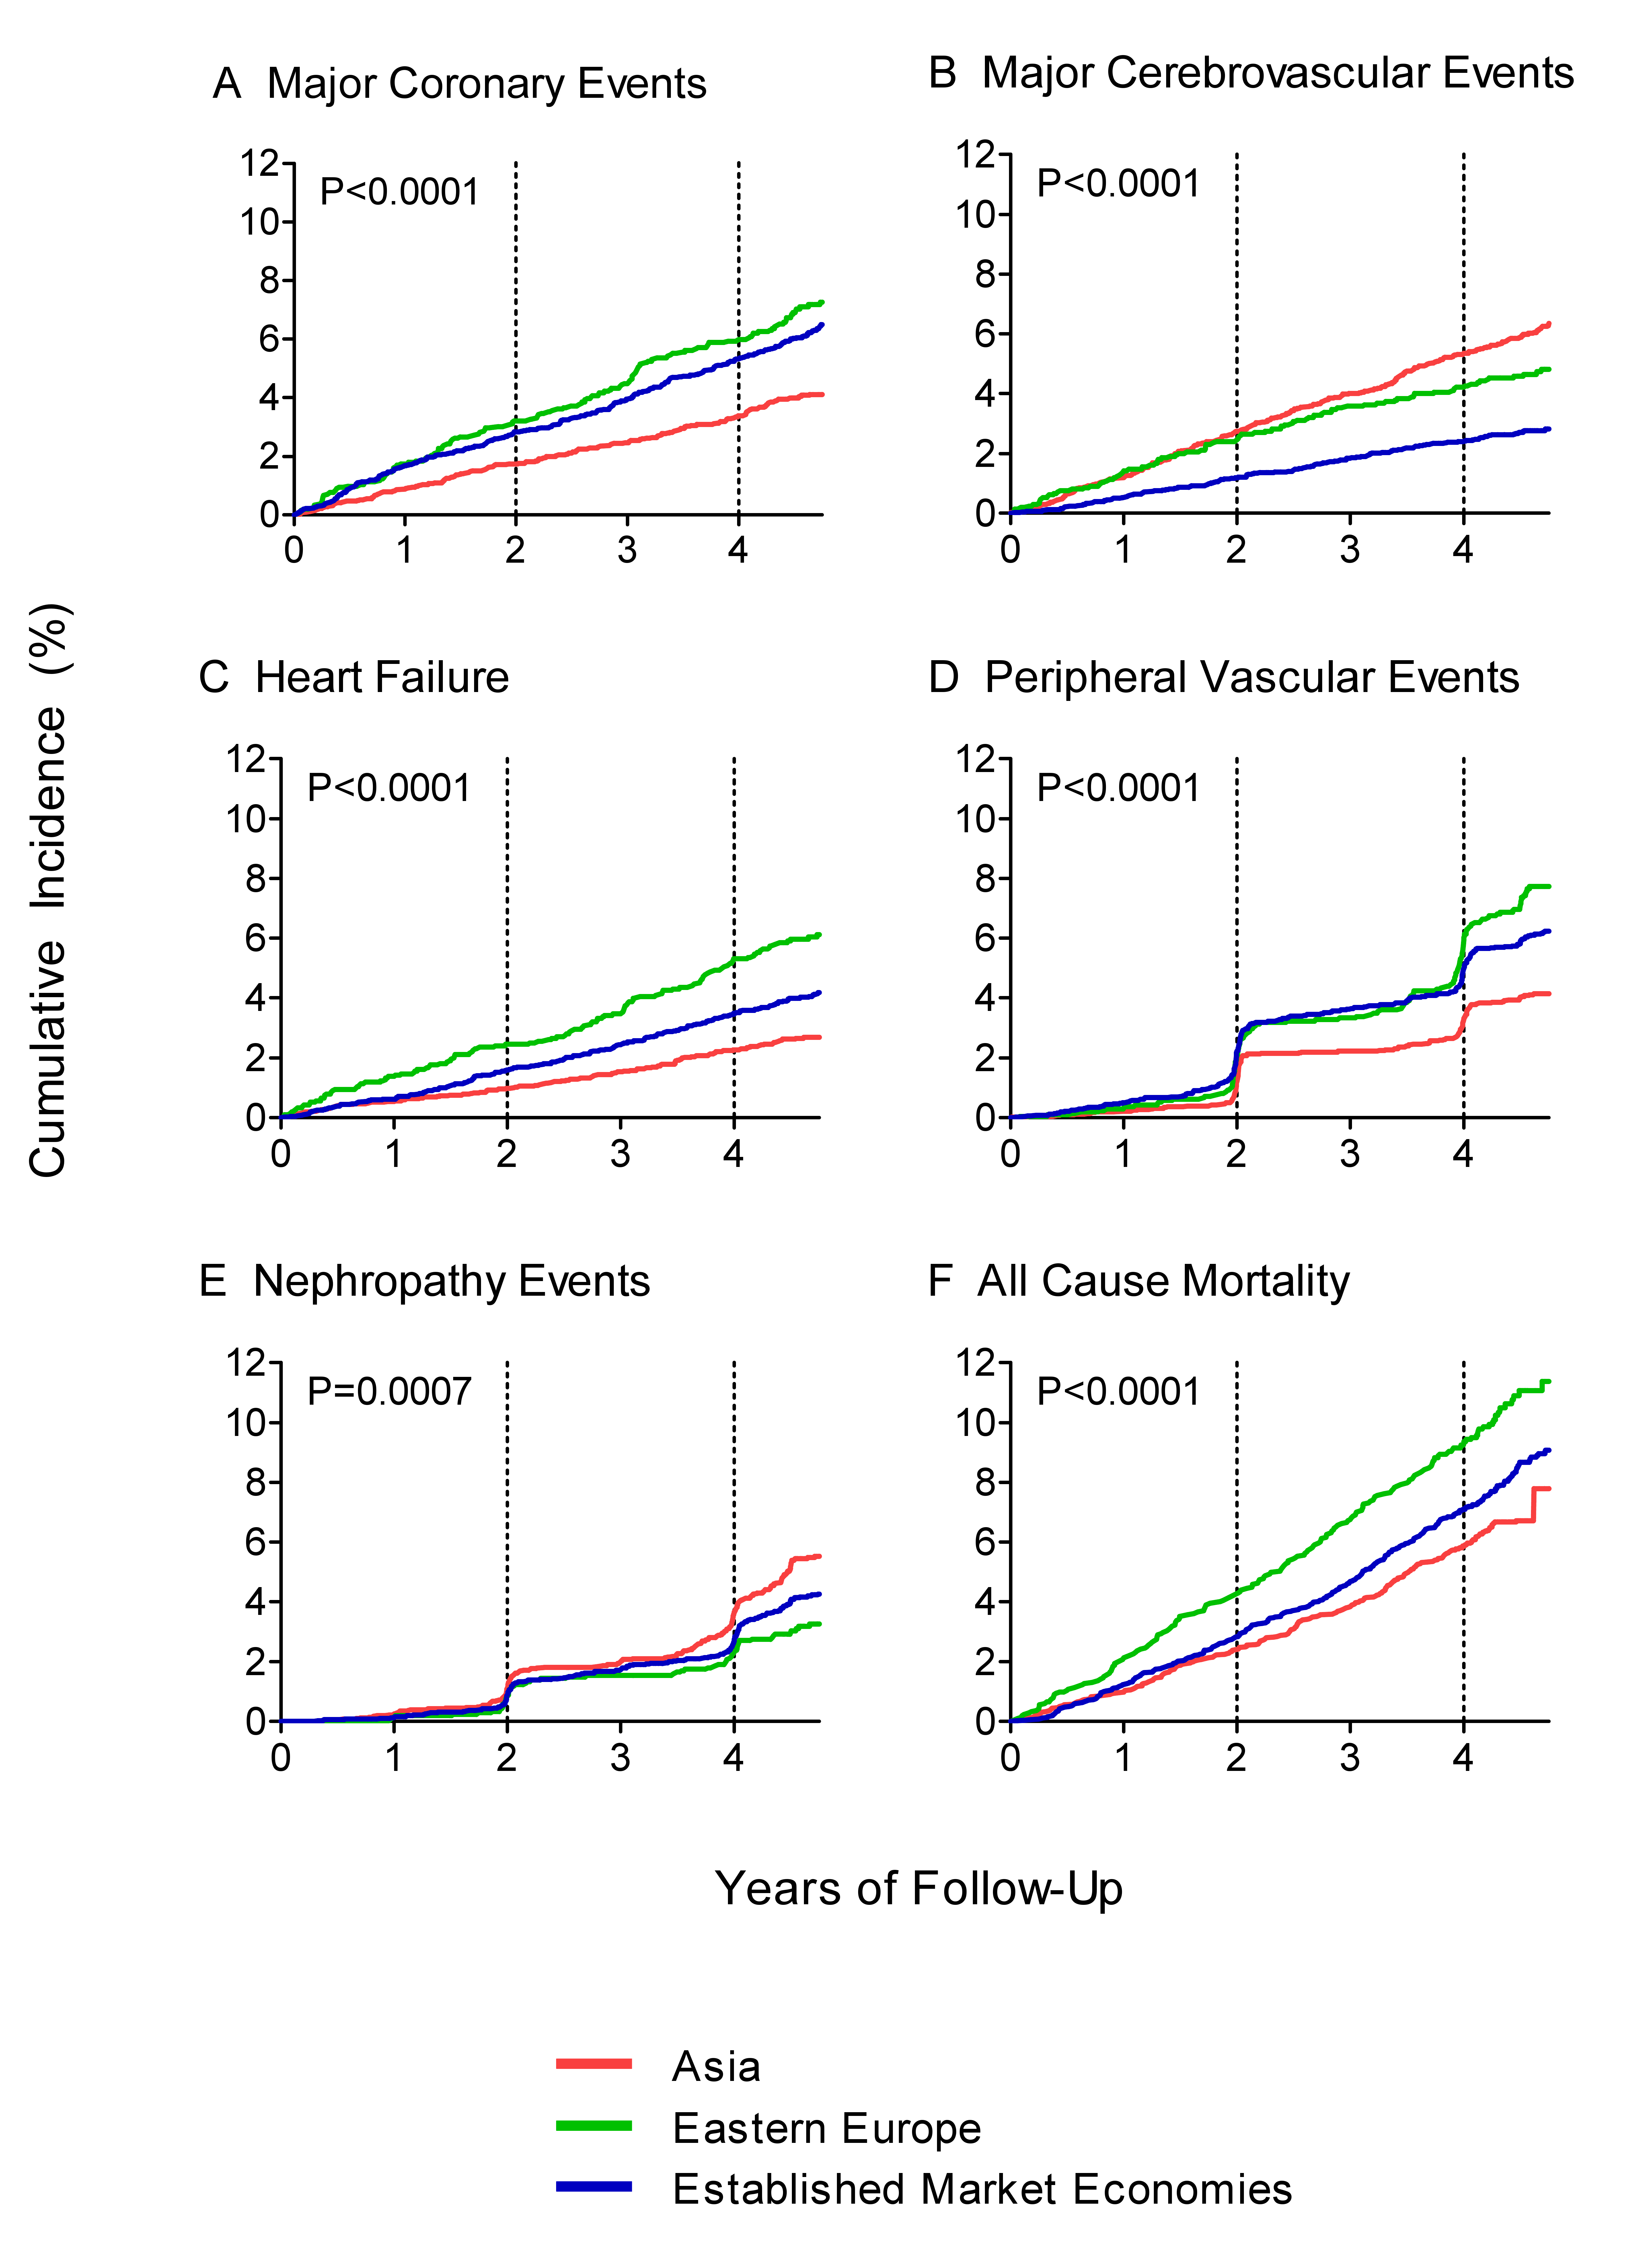 Cumulative incidence of major complications and all-cause mortality in the ADVANCE study, by region.